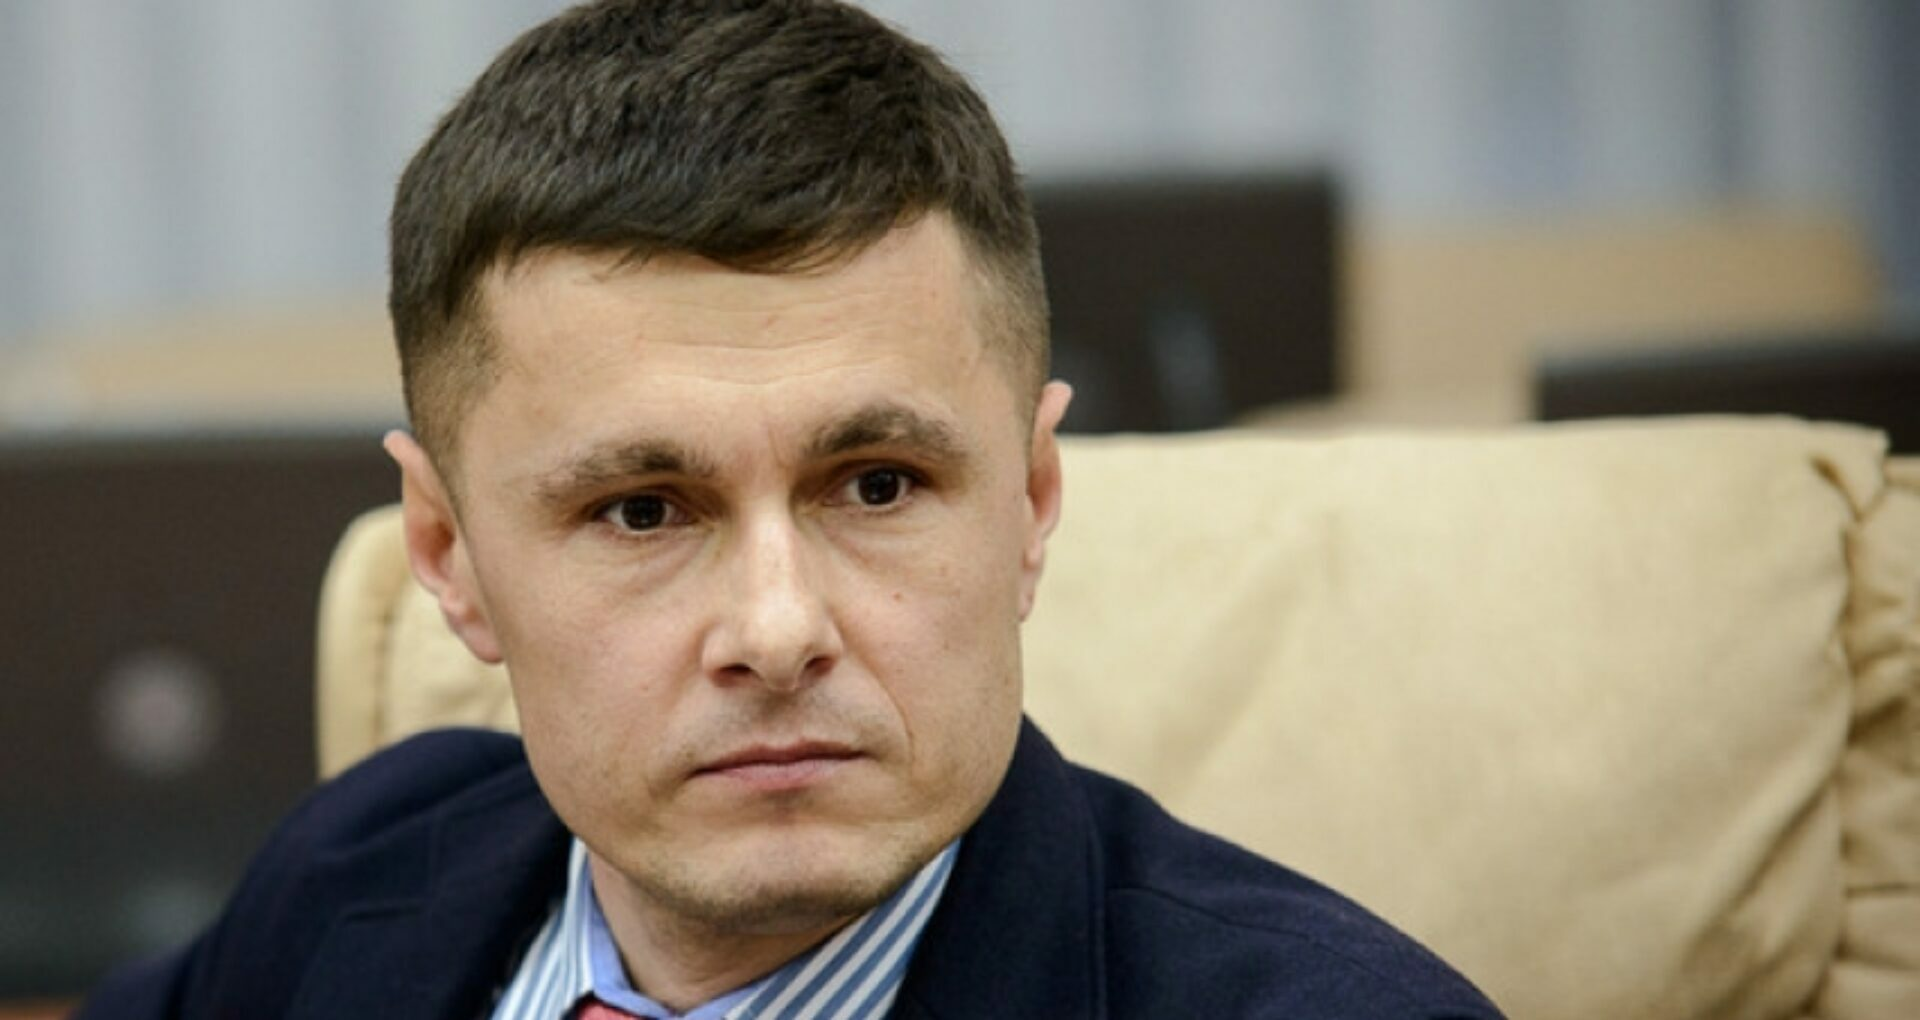 The Minister of Justice Was Excluded from a Meeting For Interference in the Judiciary